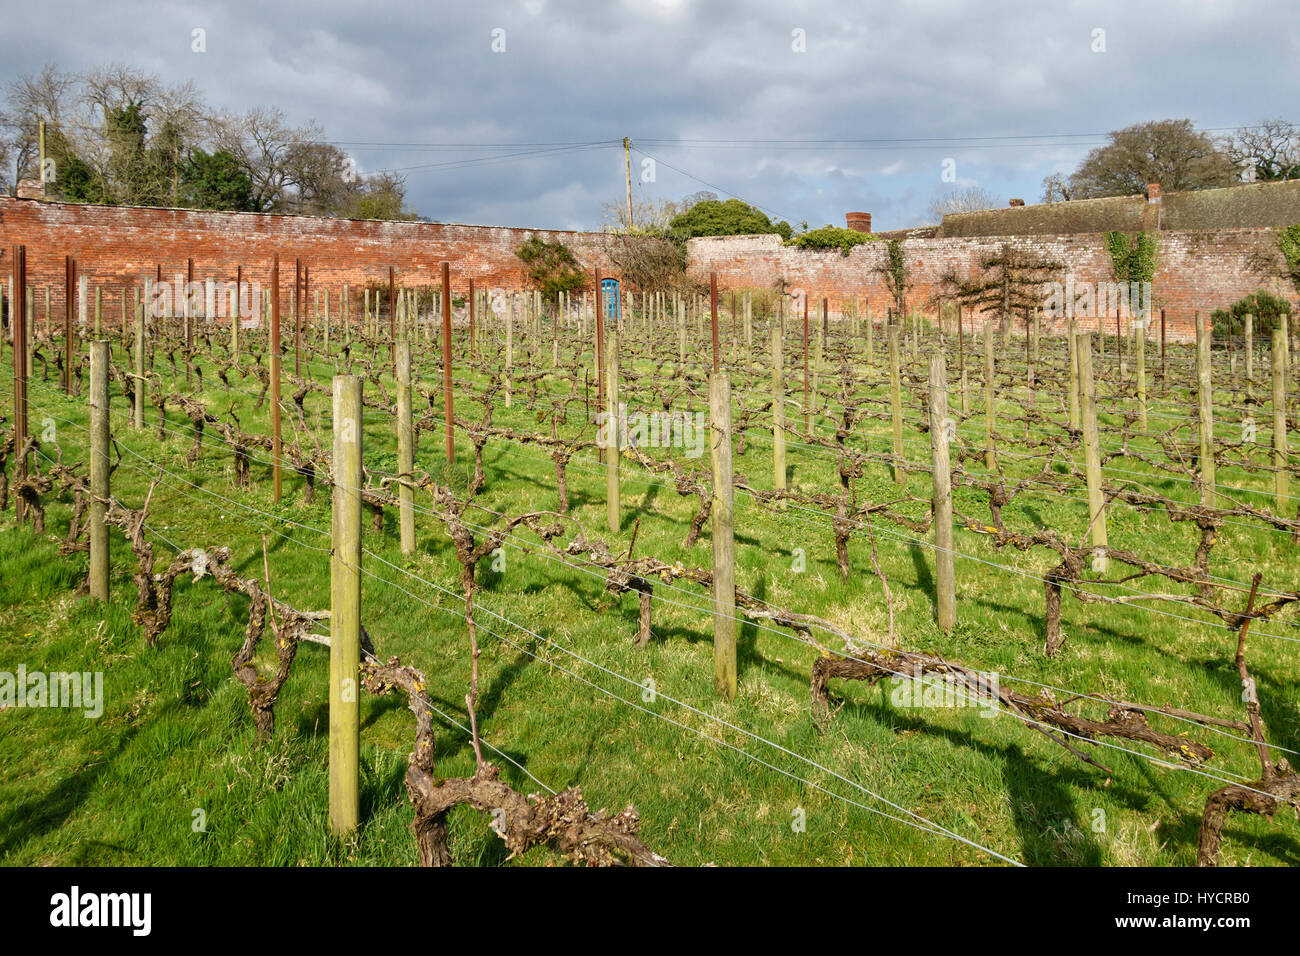 The walled kitchen garden at Croft Castle, Herefordshire, UK. Grape vines in the working vineyard, which produces - Stock Image